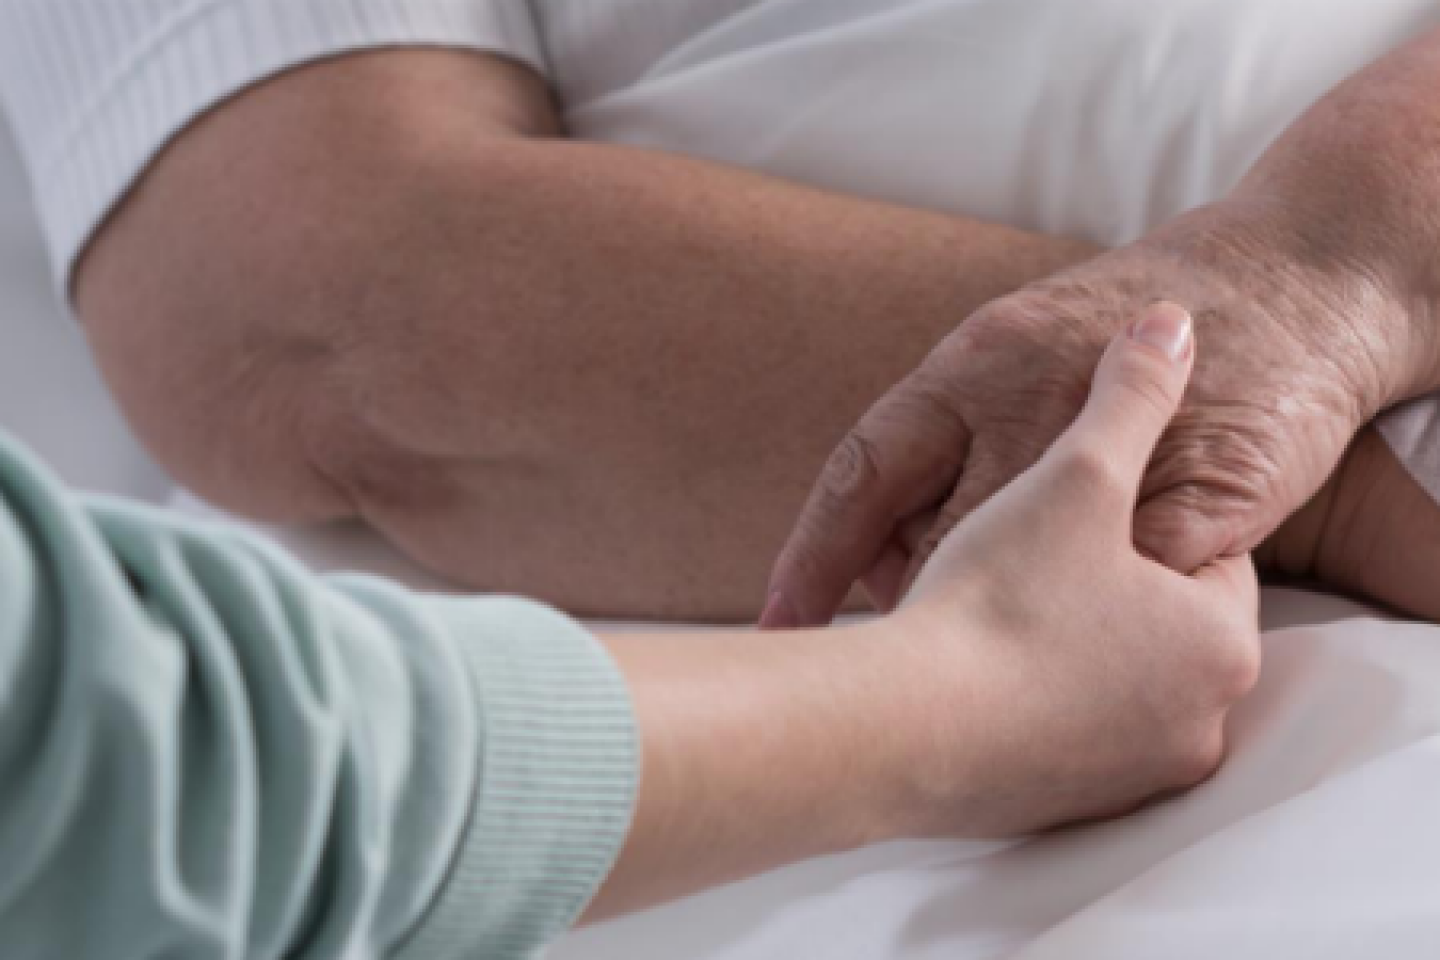 Someone holds a patient's hand